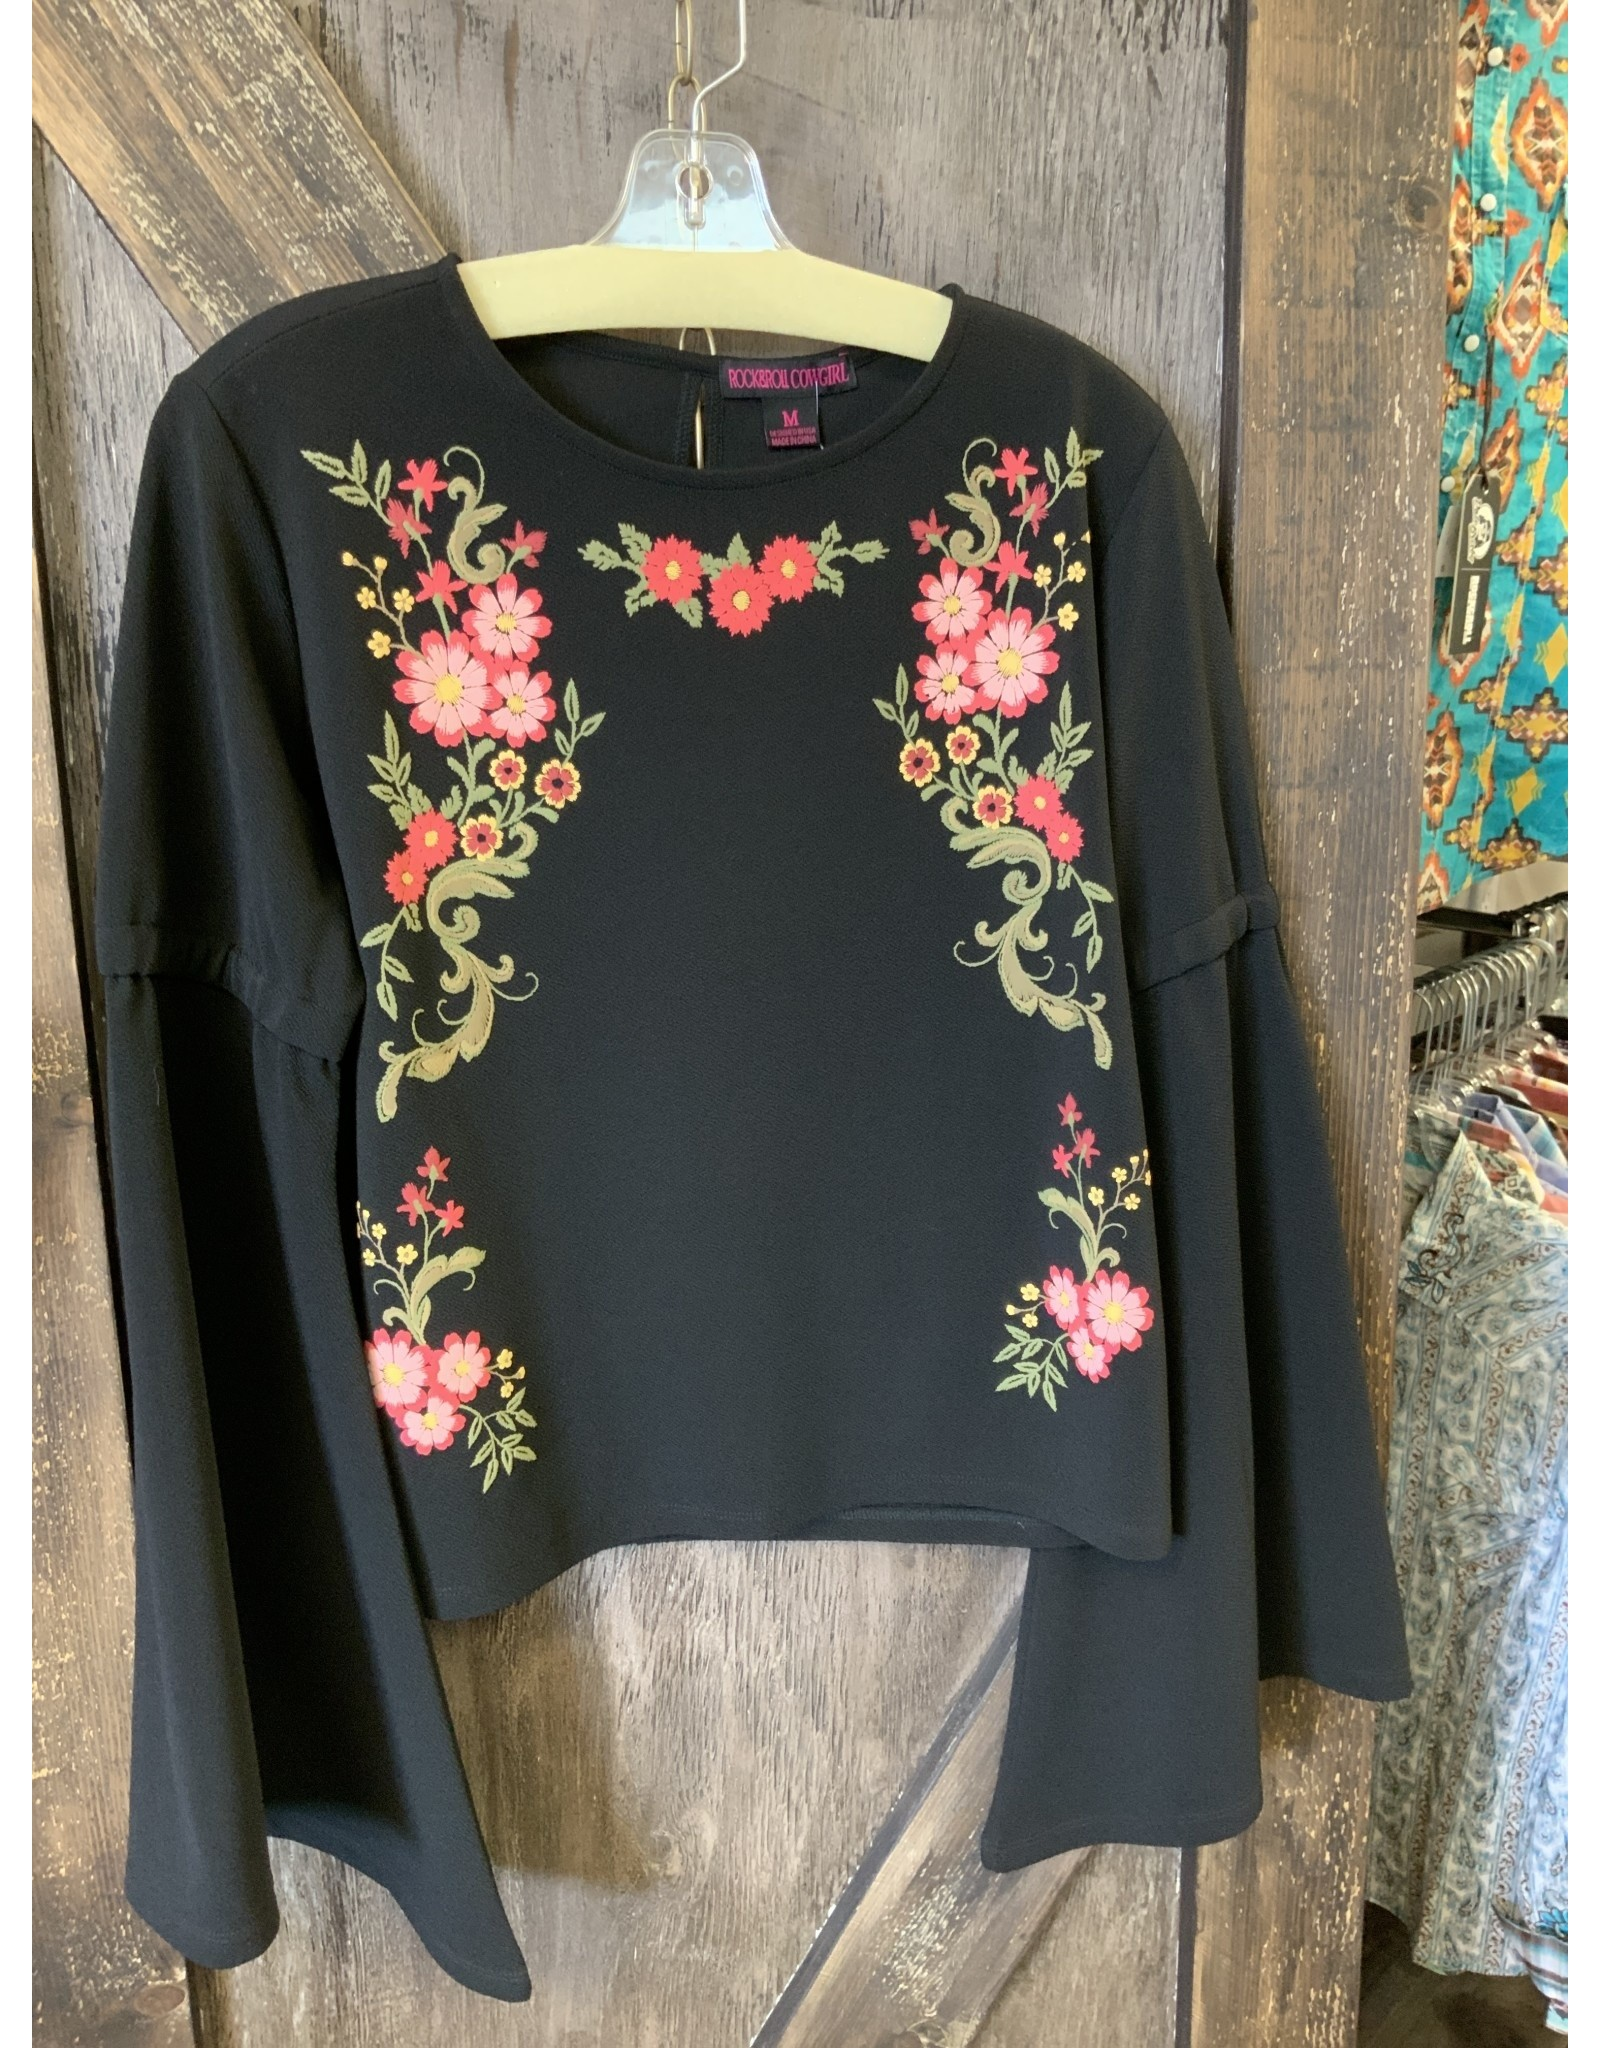 ROCK&ROLL LADIES BELL SLEEVE WITH FLOWERS TOP